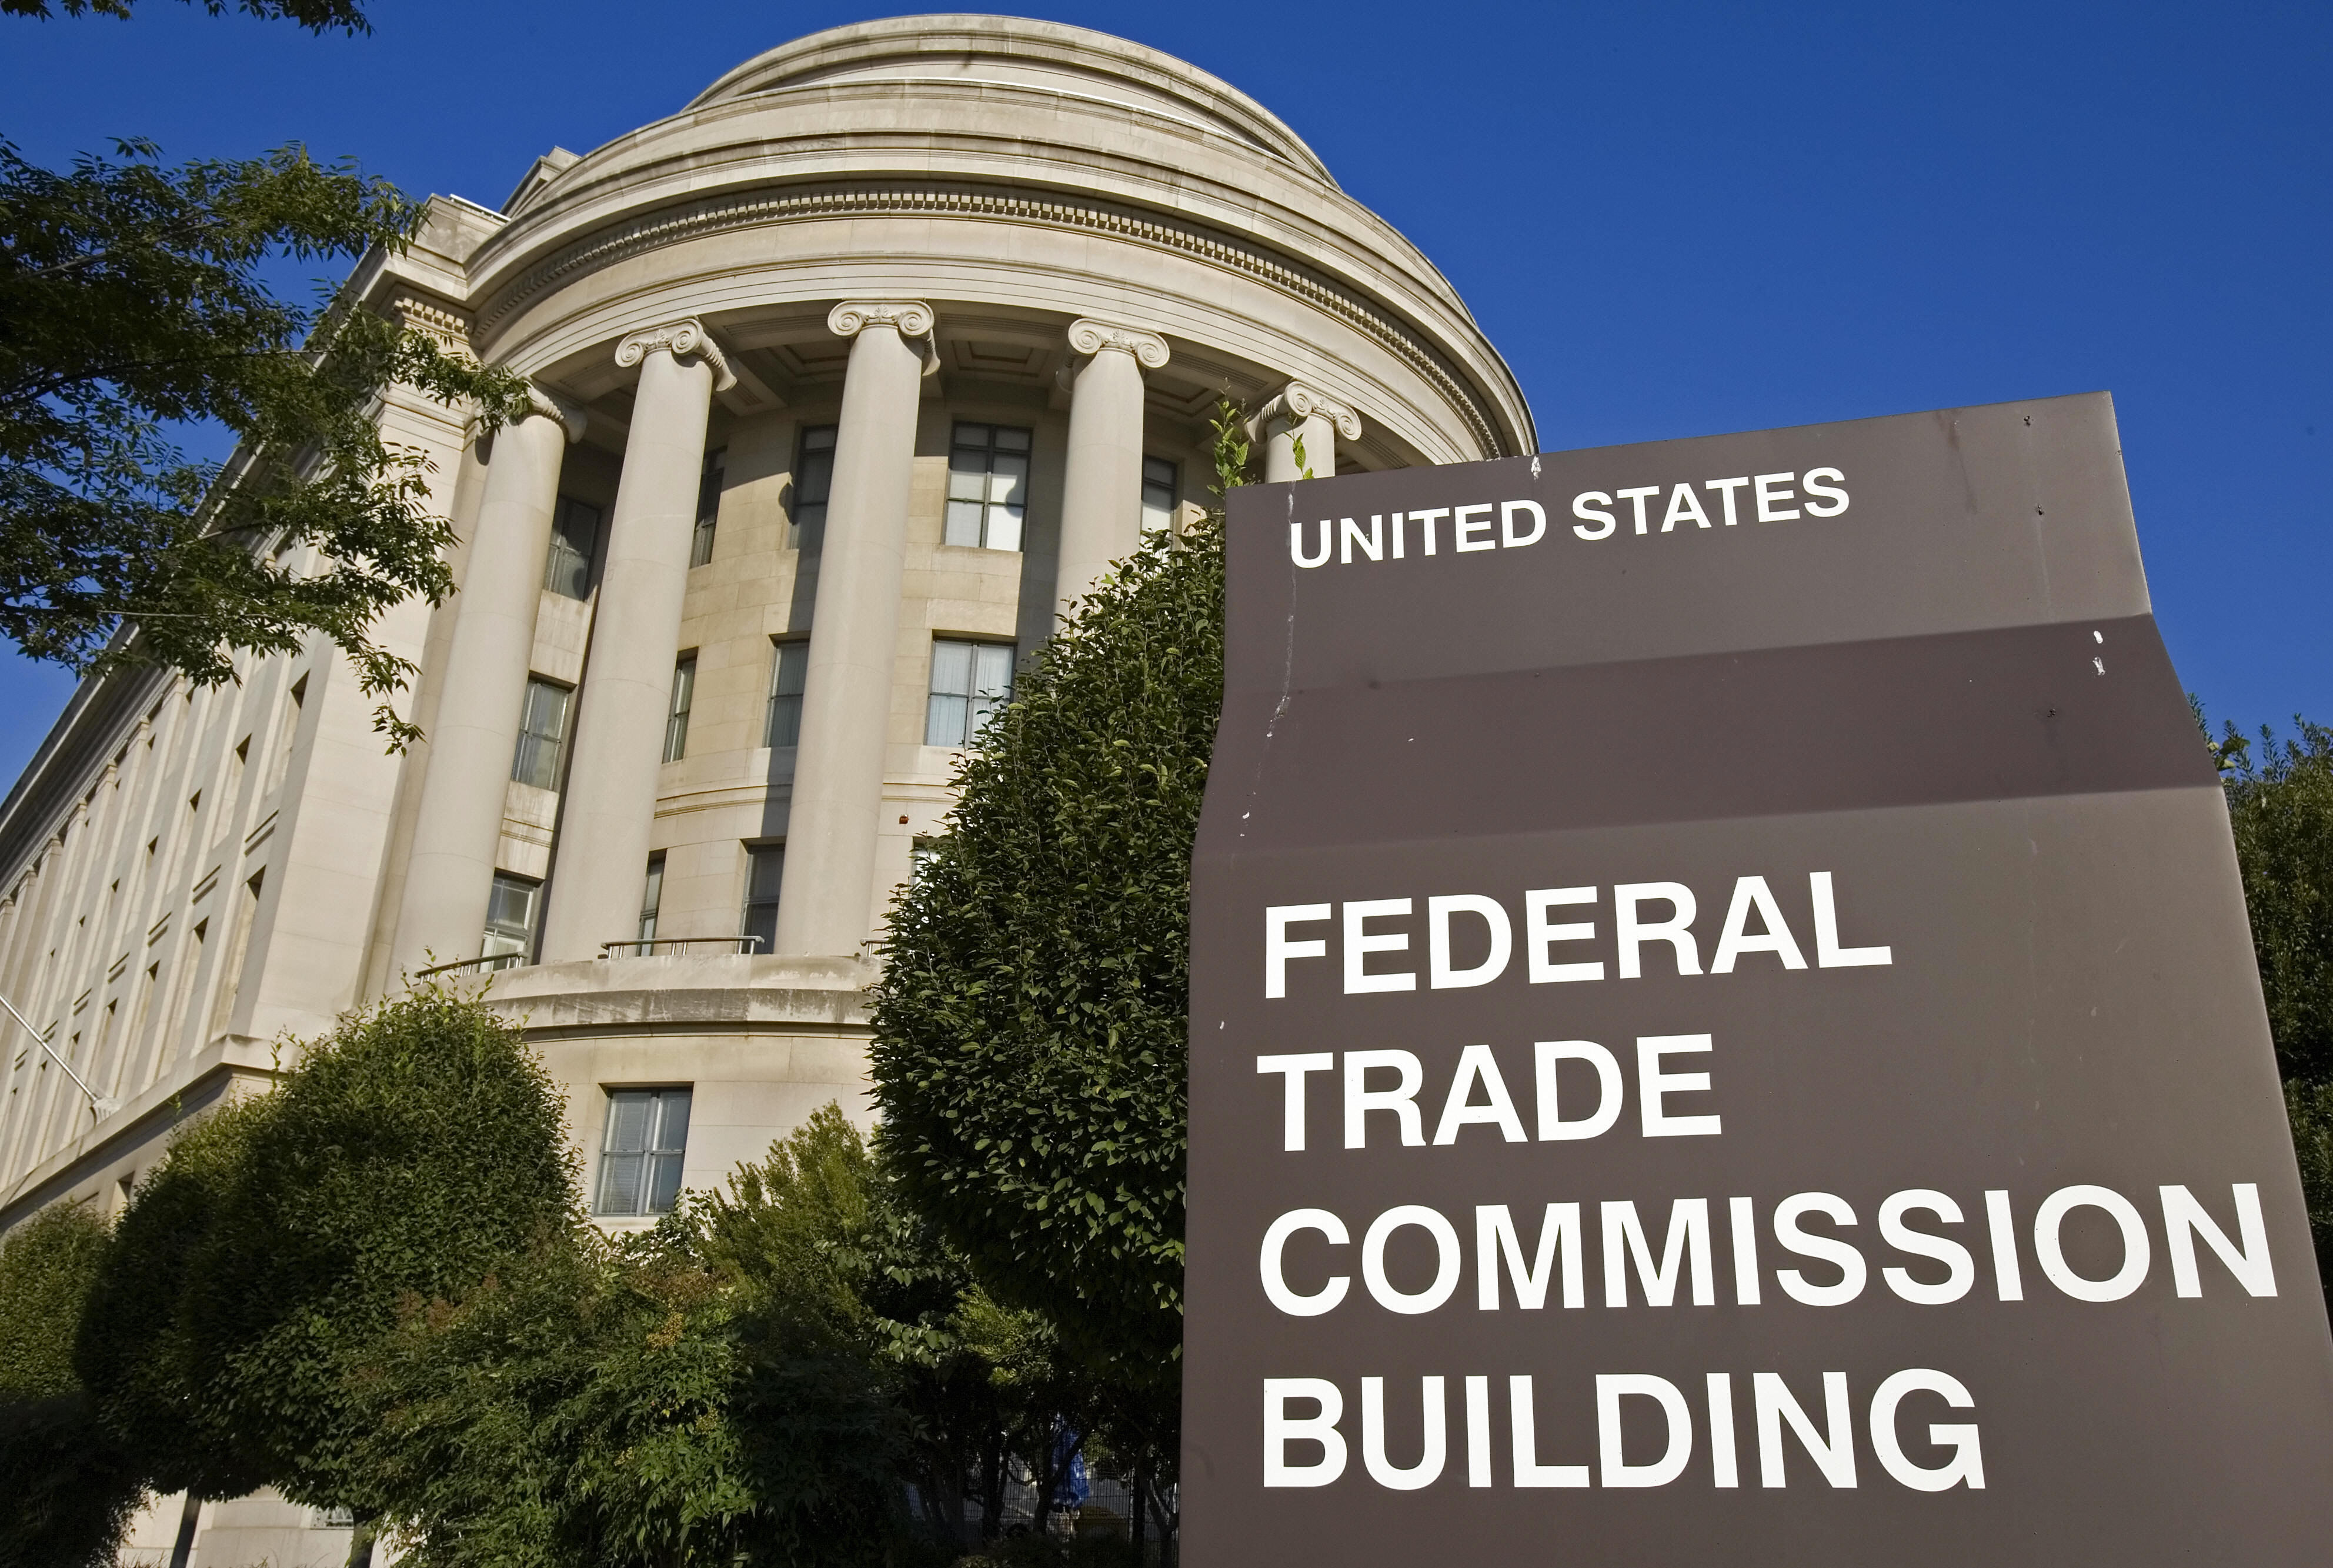 A sign marks the Federal Trade Commission building in Washington, DC.